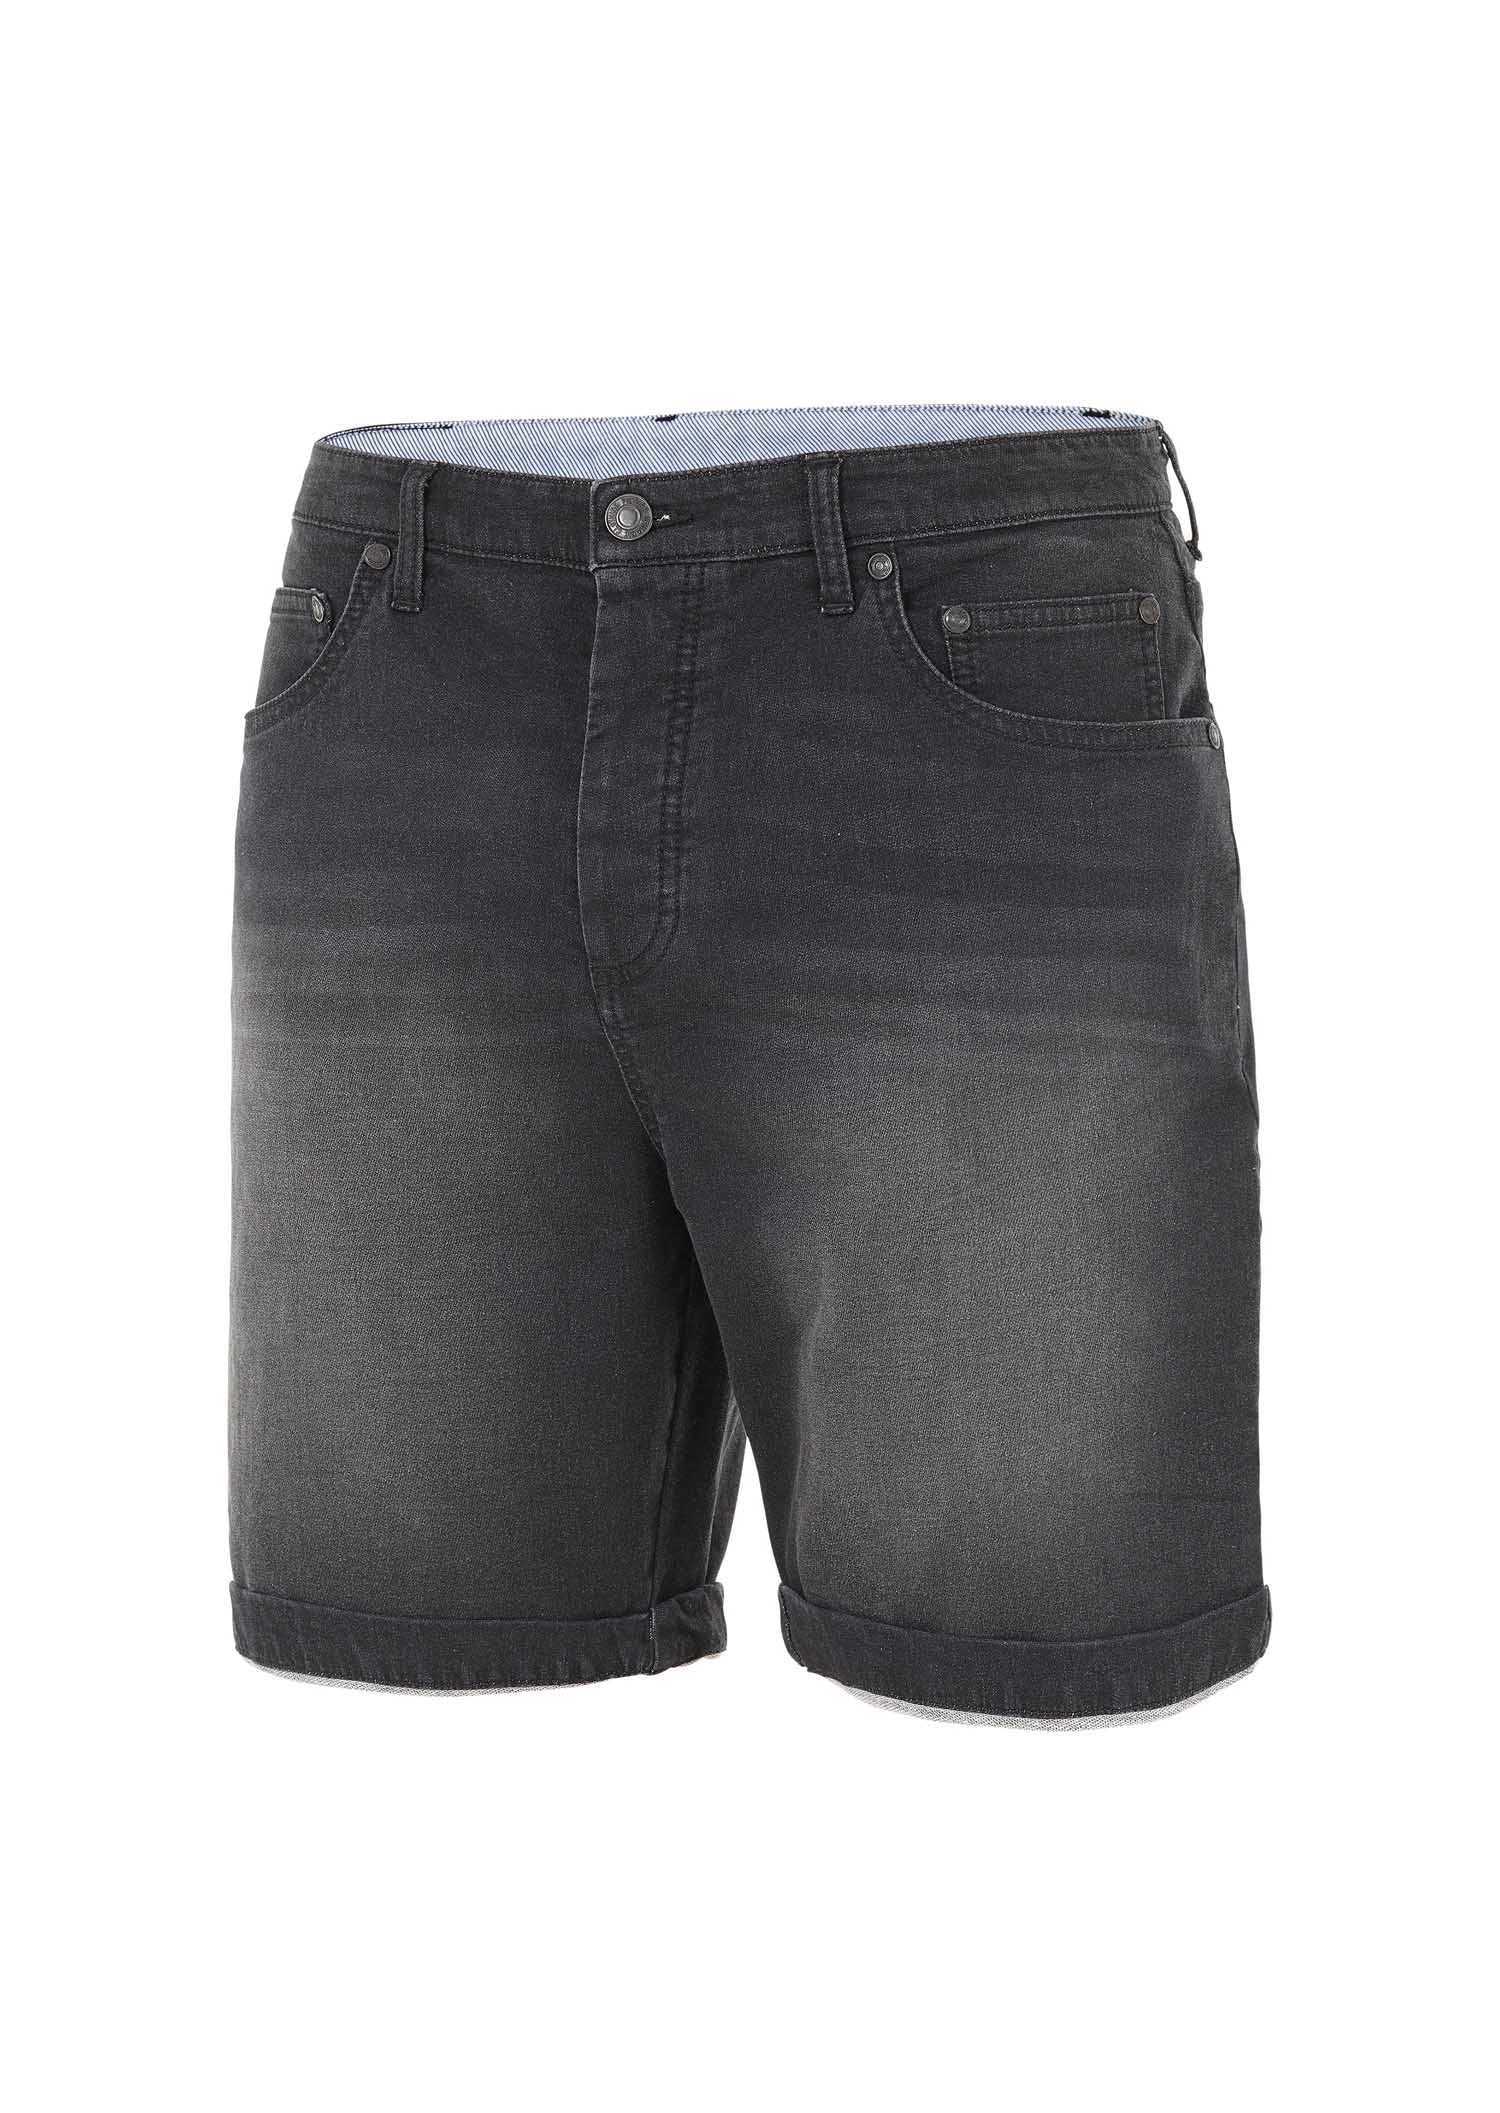 Picture Denimo Shorts